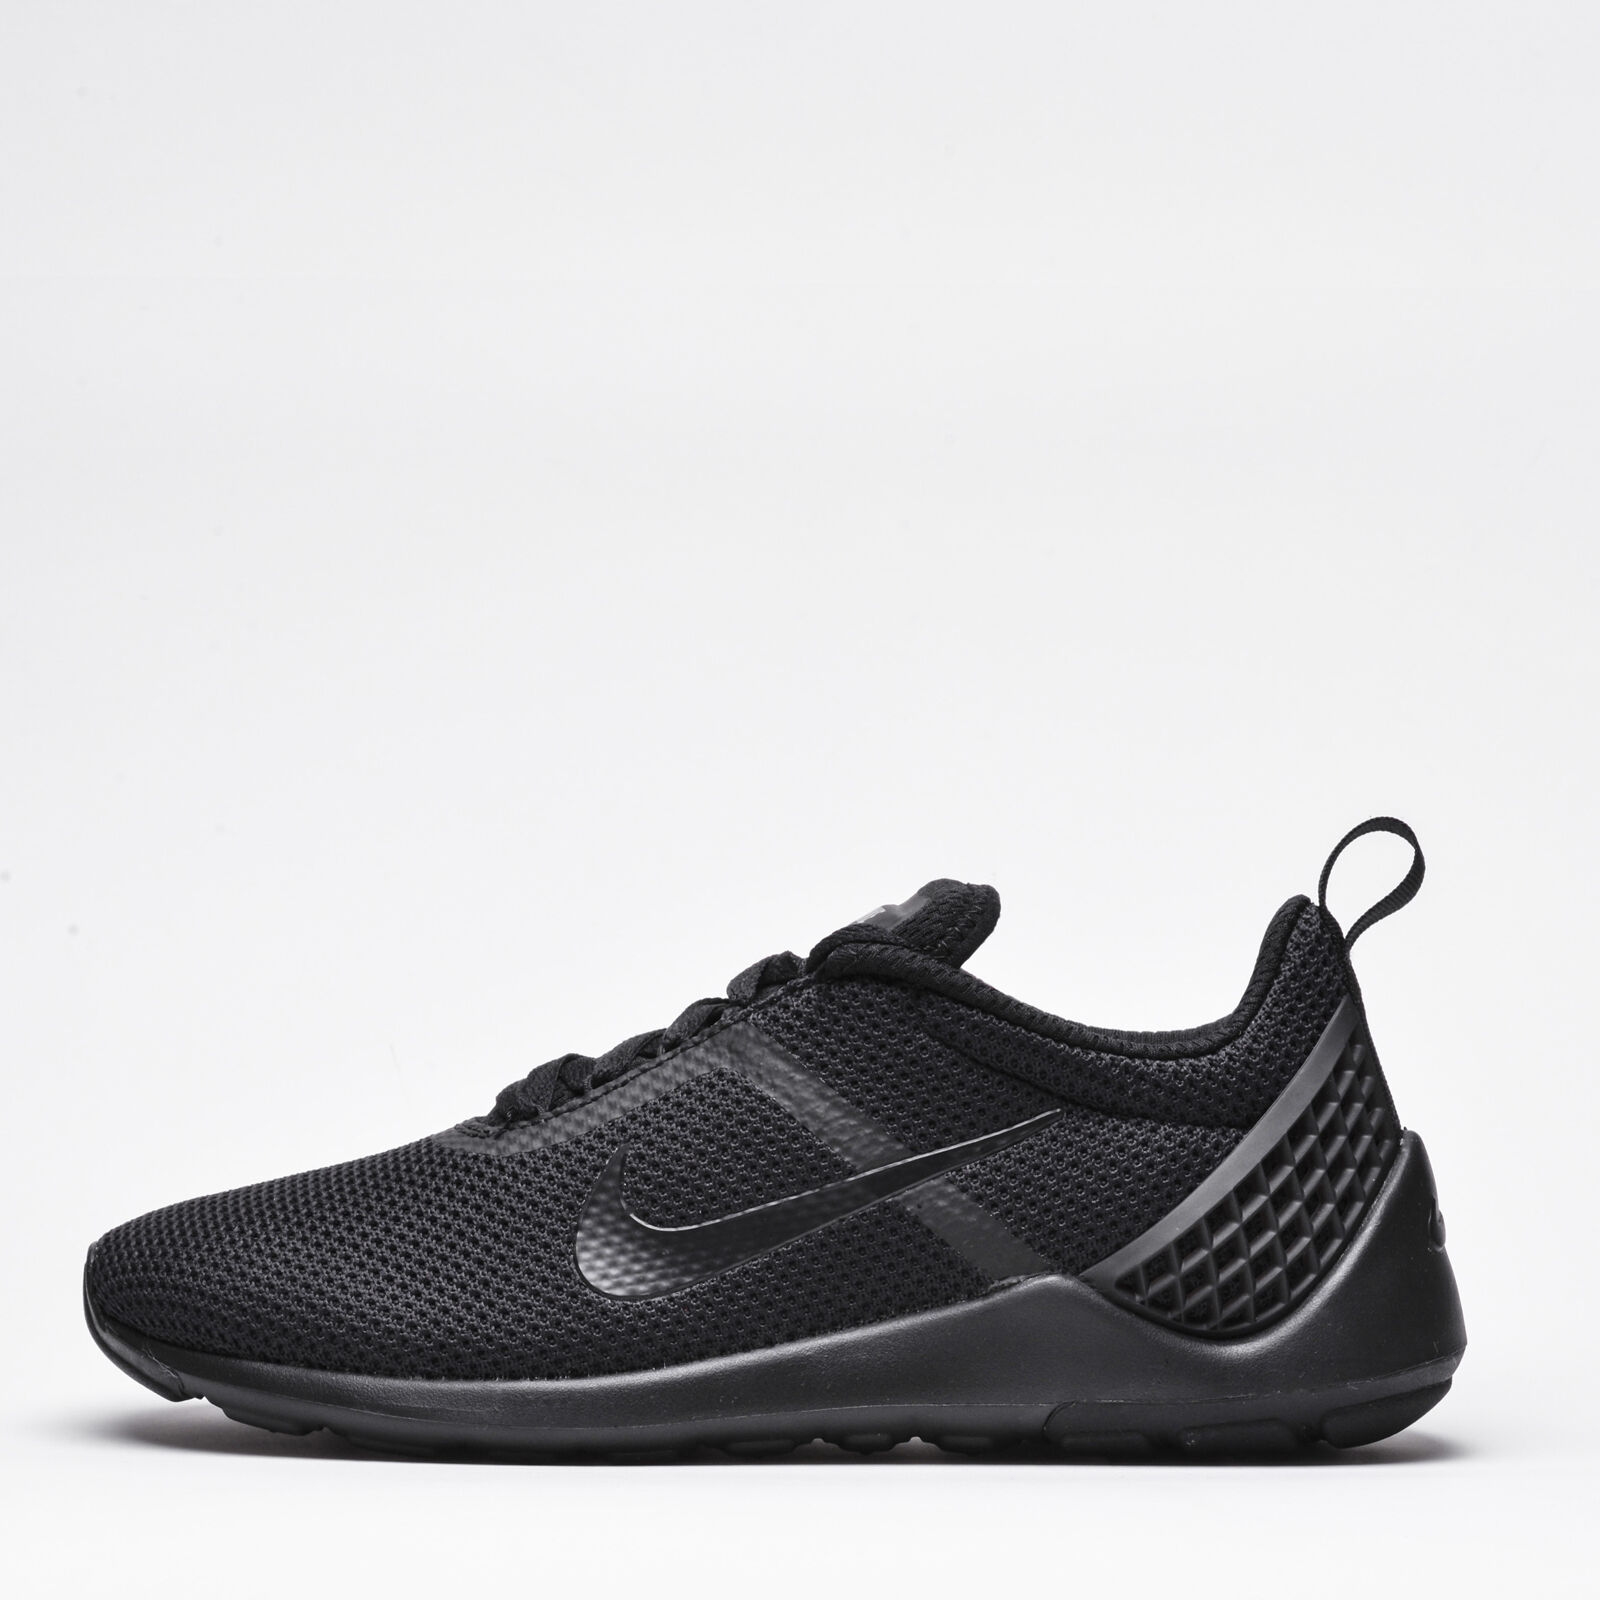 Nike Lunarestoa 2 Essential homme Trainers Triple noir Trainers chaussures Sneakers